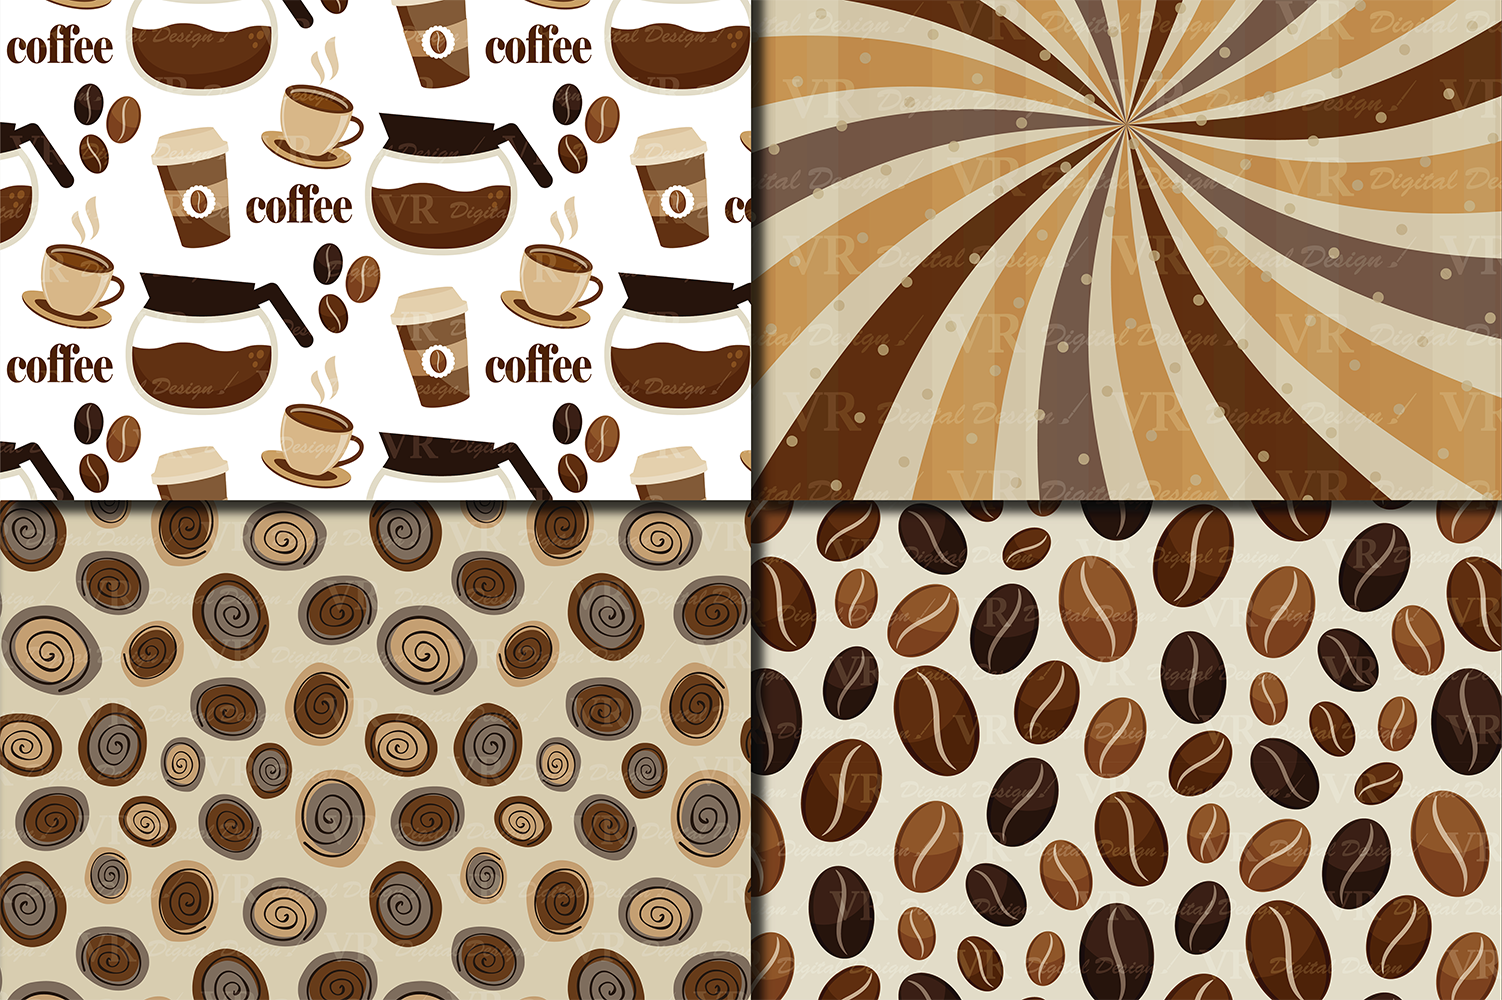 Coffee Digital paper pack / Coffee beans pattern / Coffee backgrounds / Brown Scrapbooking paper example image 3